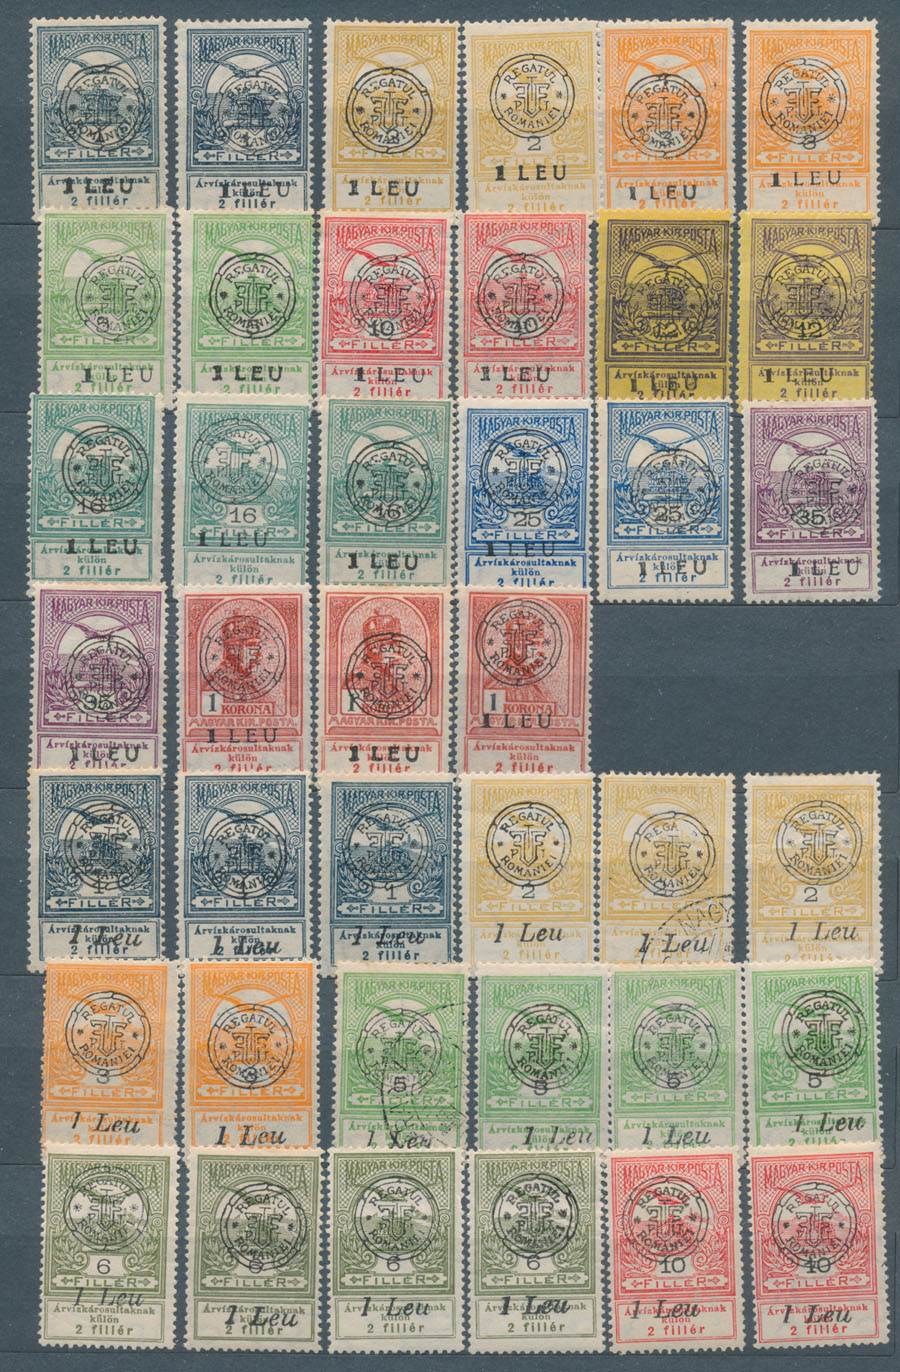 Lot 734 - Romania - Transylvania Issues (New Romania) collection -  Raritan Stamps Inc. Stamp Auction #75